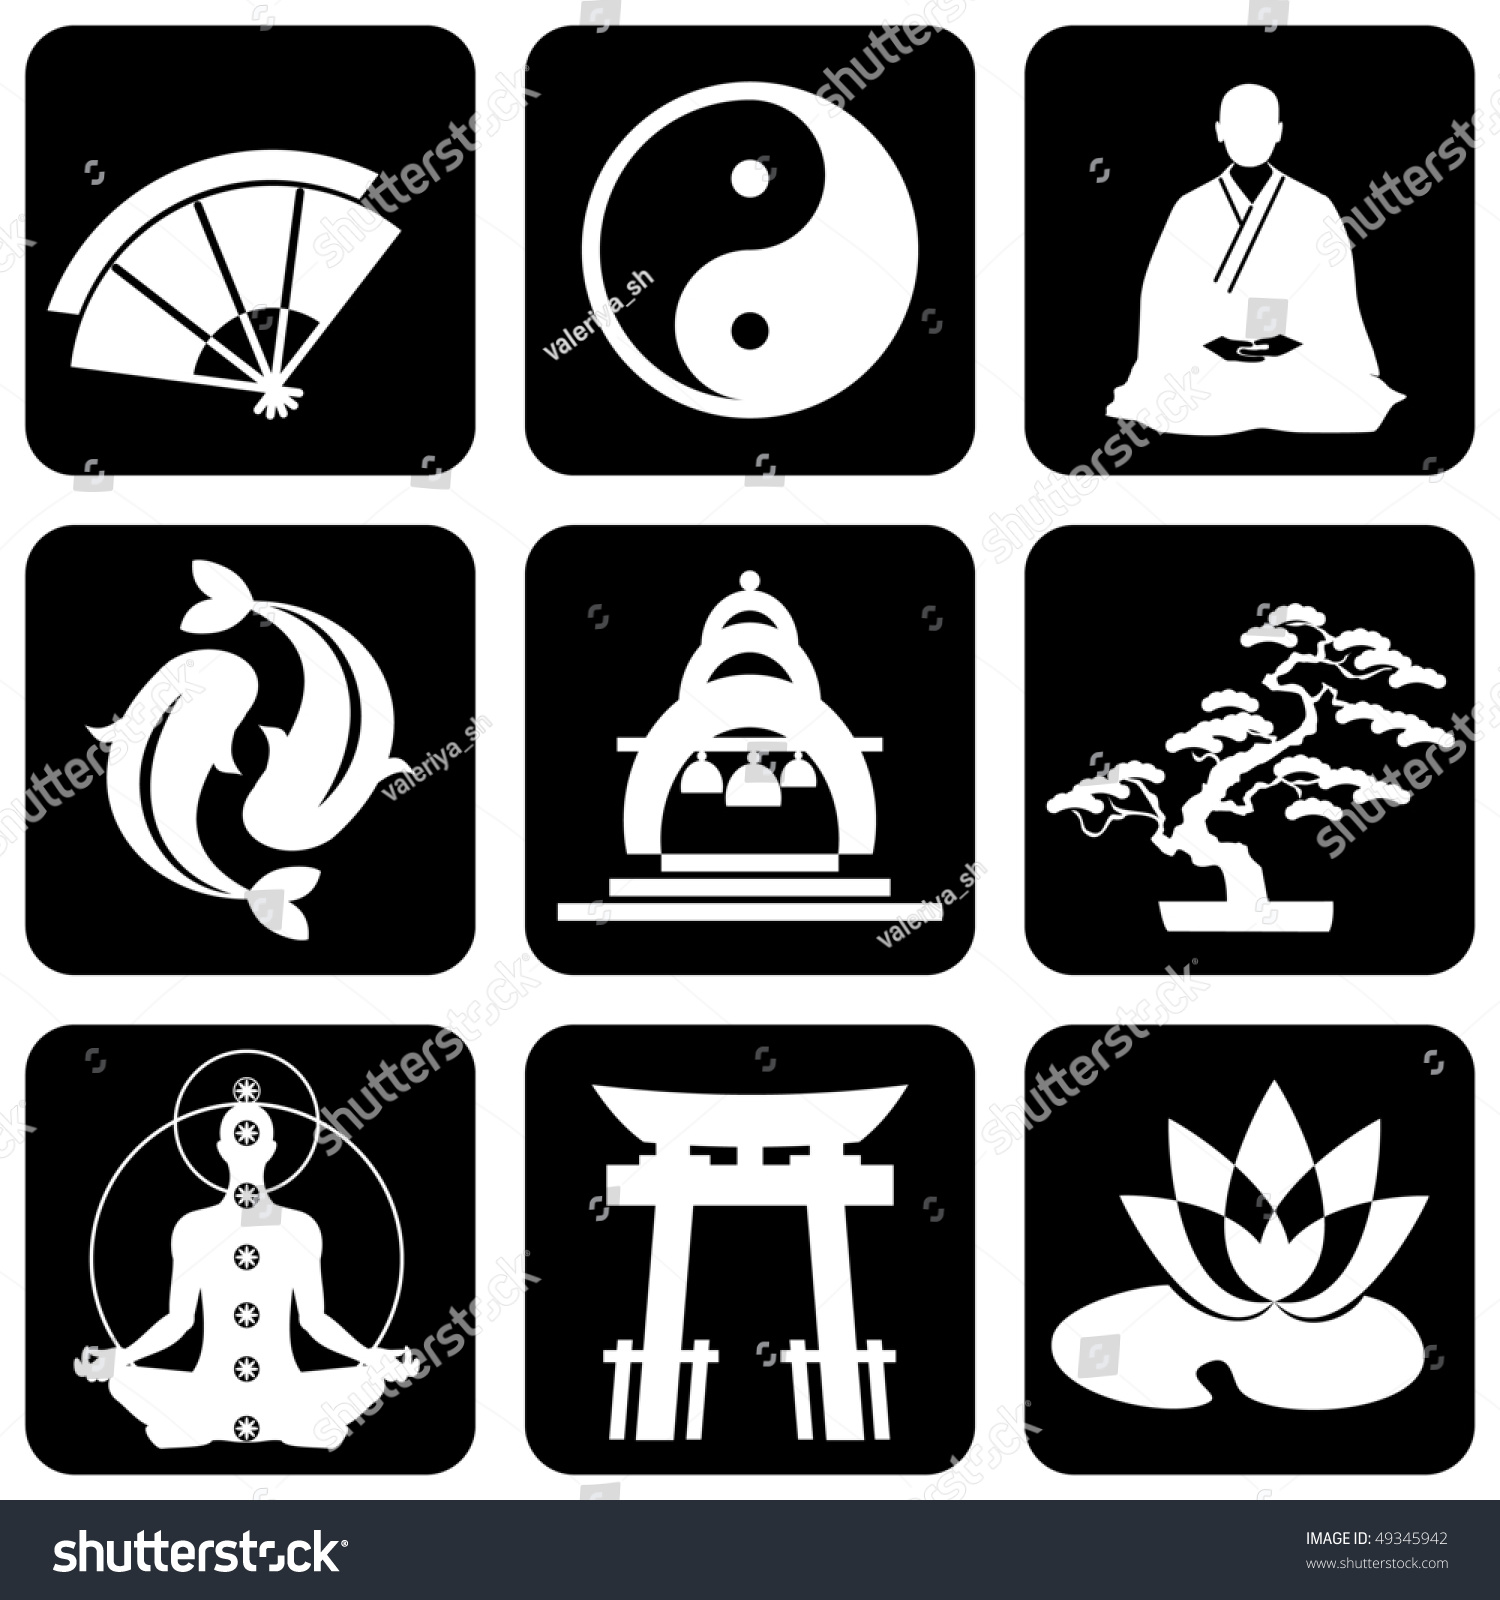 Buddhist Nirvana Symbol | www.imgkid.com - The Image Kid ...